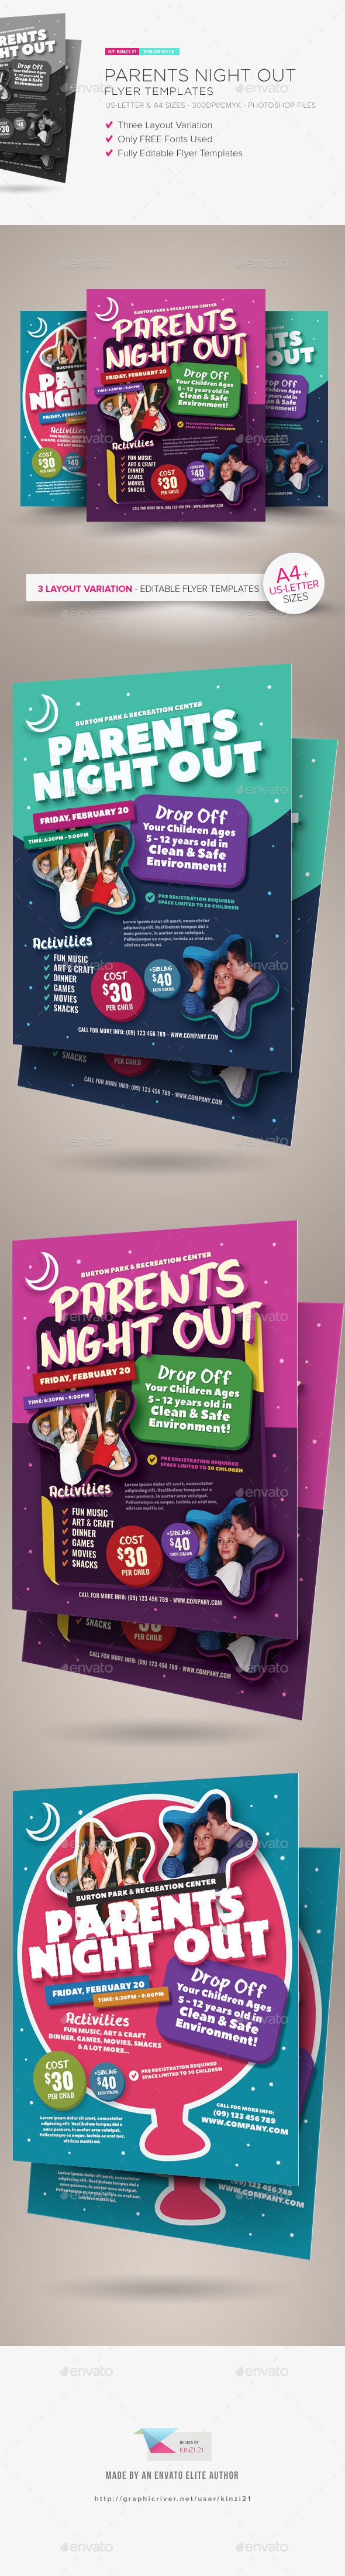 Parents night out flyer templates by kinzishots graphicriver for Parent flyer templates